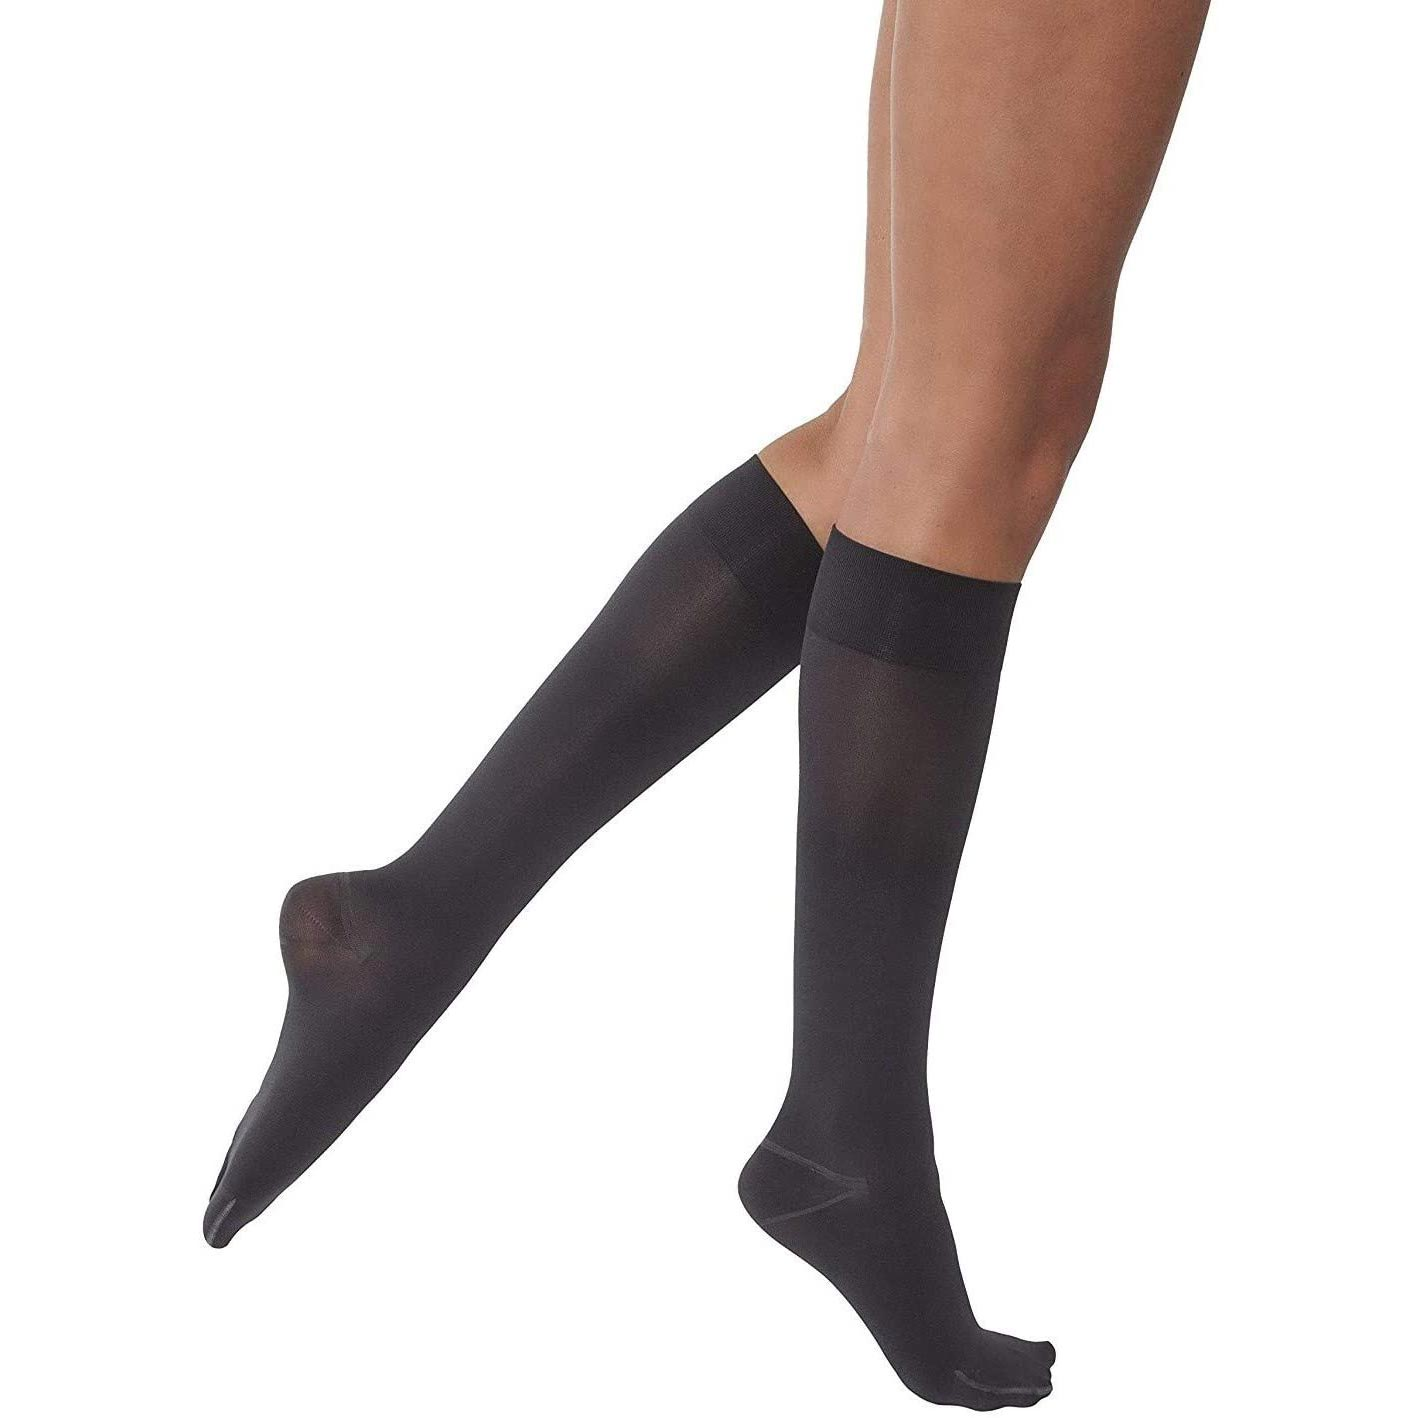 Jobst Opaque Knee High Compression Stockings with SoftFit Technology Band